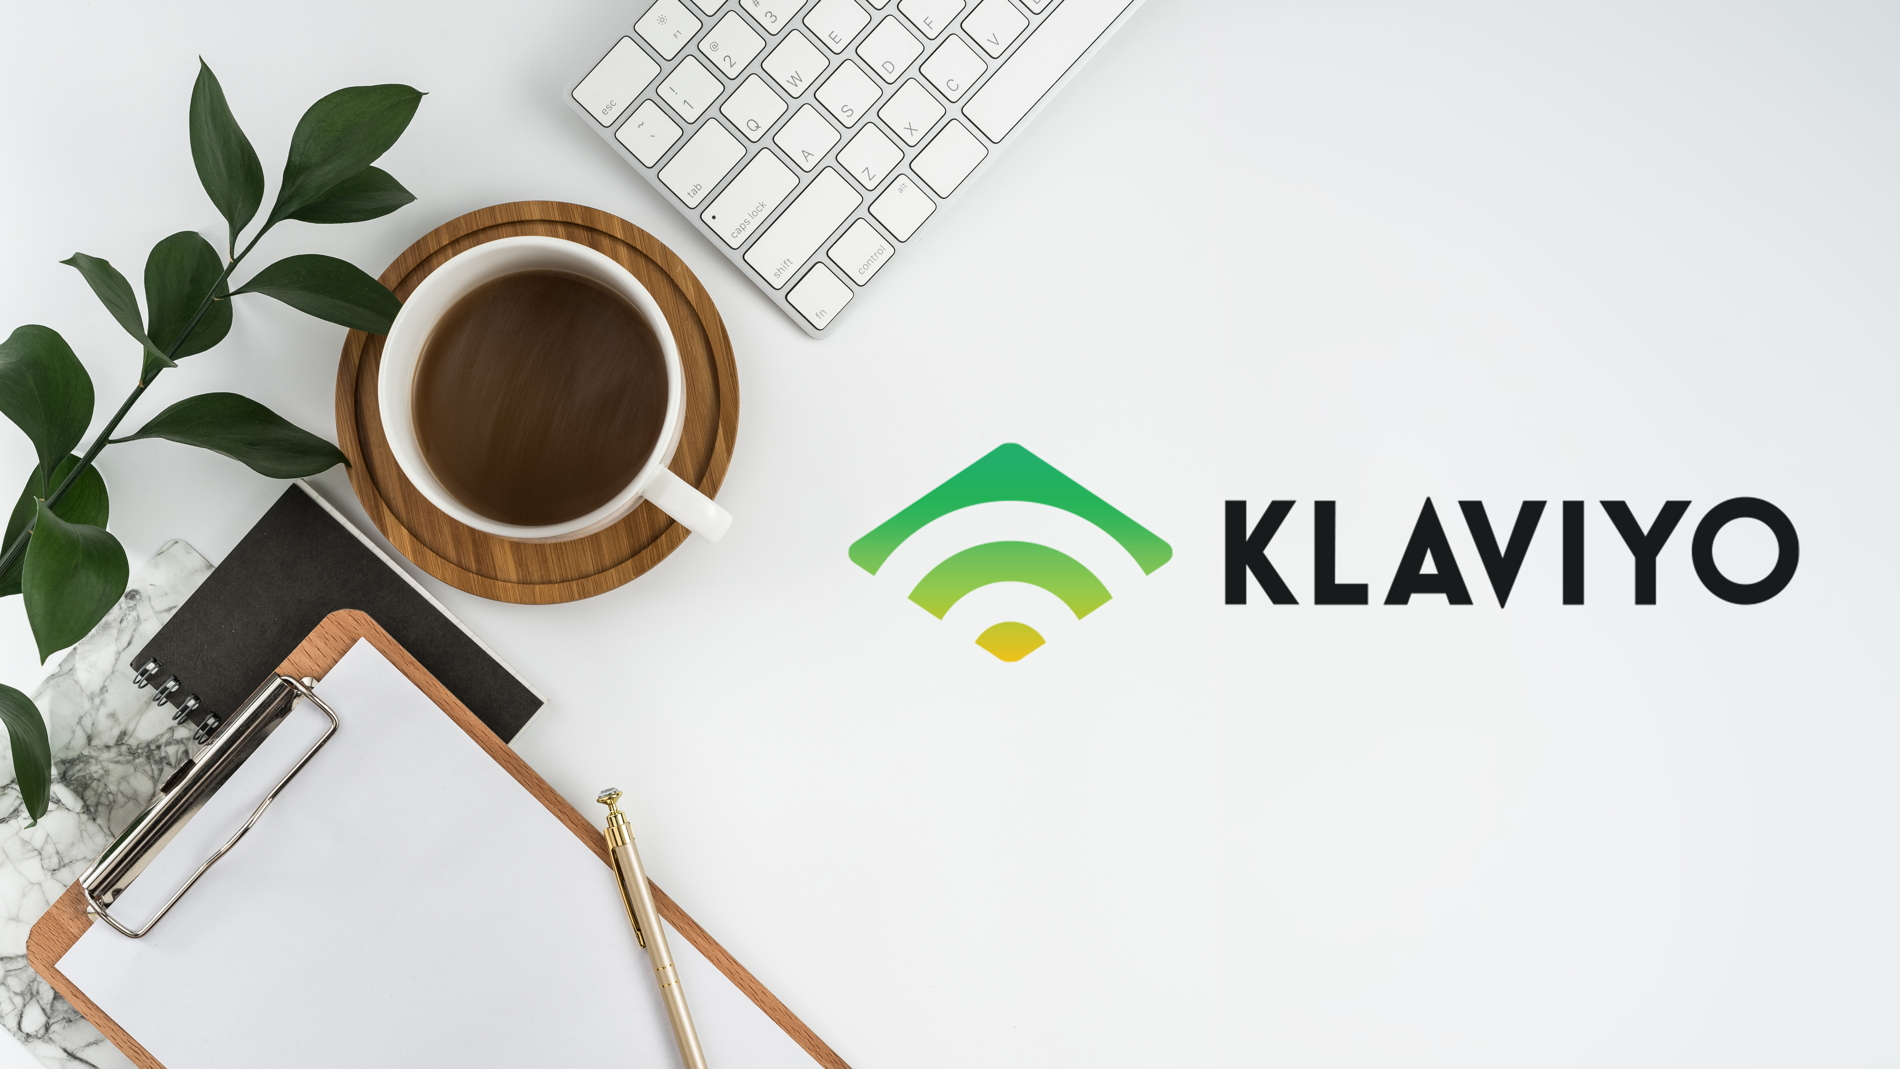 Klaviyo, the best tool for e-commerce email marketing.